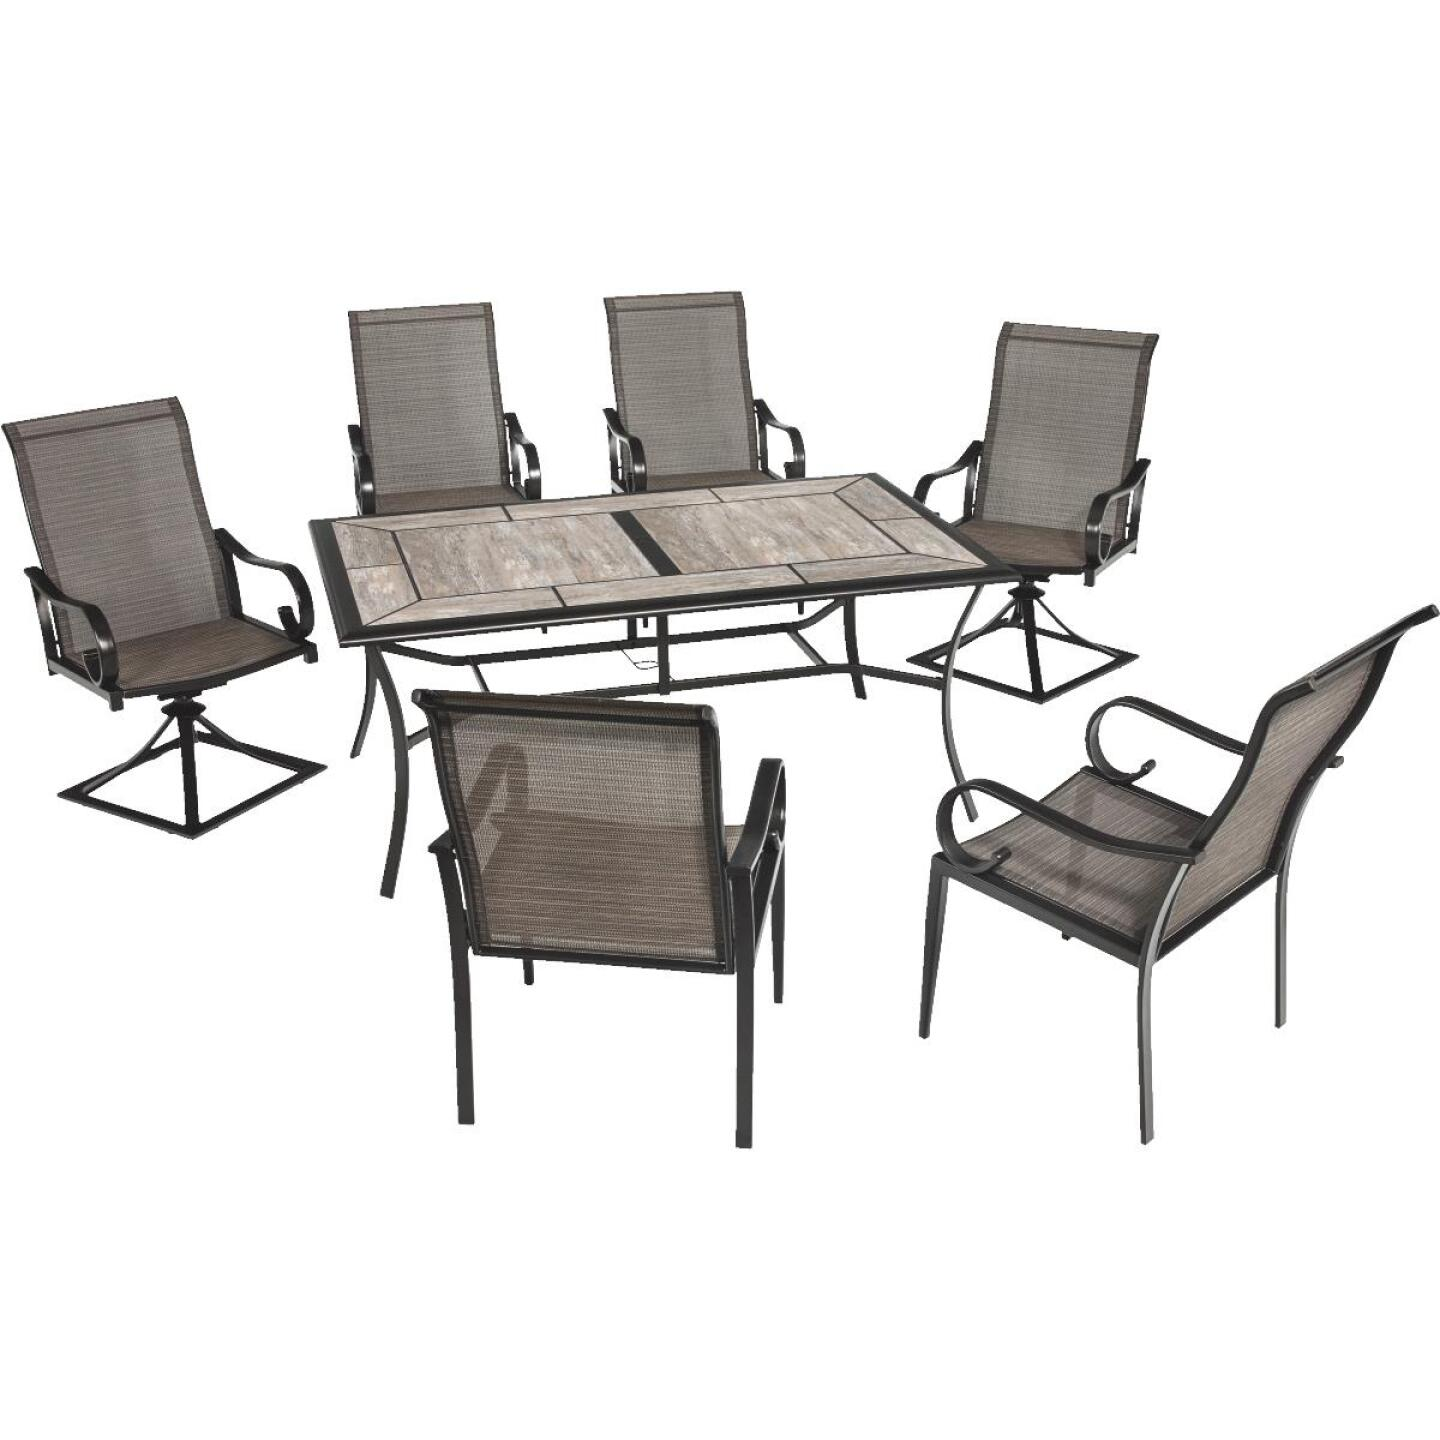 Outdoor Expressions Berkshire 7-Piece Dining Set Image 234